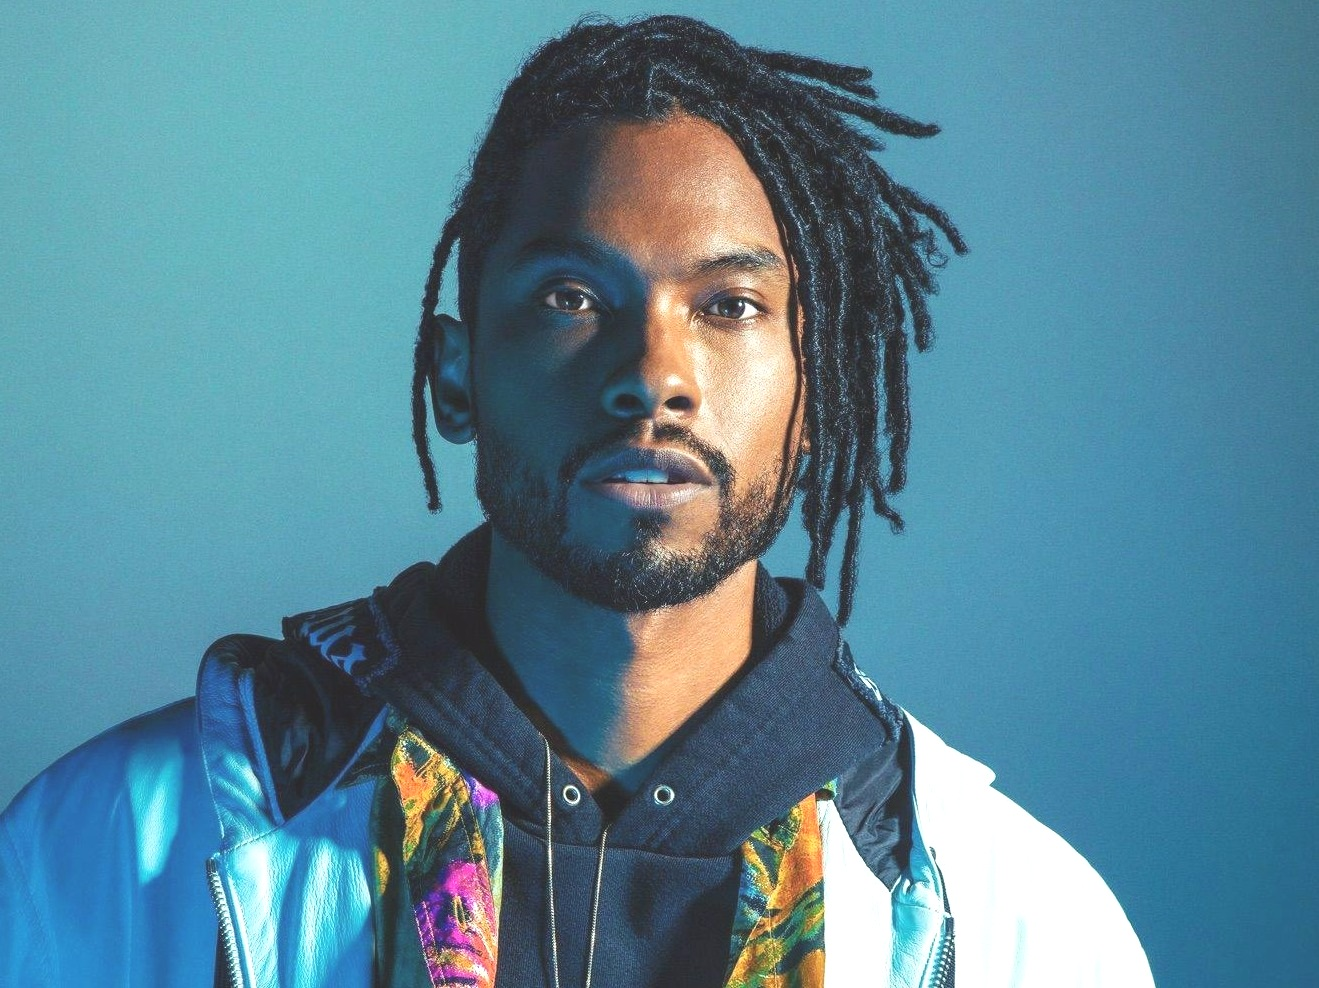 Miguel - Grammy-award-winning singer/songwriter, Miguel, was raised in San Pedro, California, and started pursuing his music career at age 13. Combining R&B, funk, hip hop, rock and electronic styles, Miguel has released four studio albums. He joined Tangible Movement as the lead ambassador in order to share his story to inspire and encourage others.